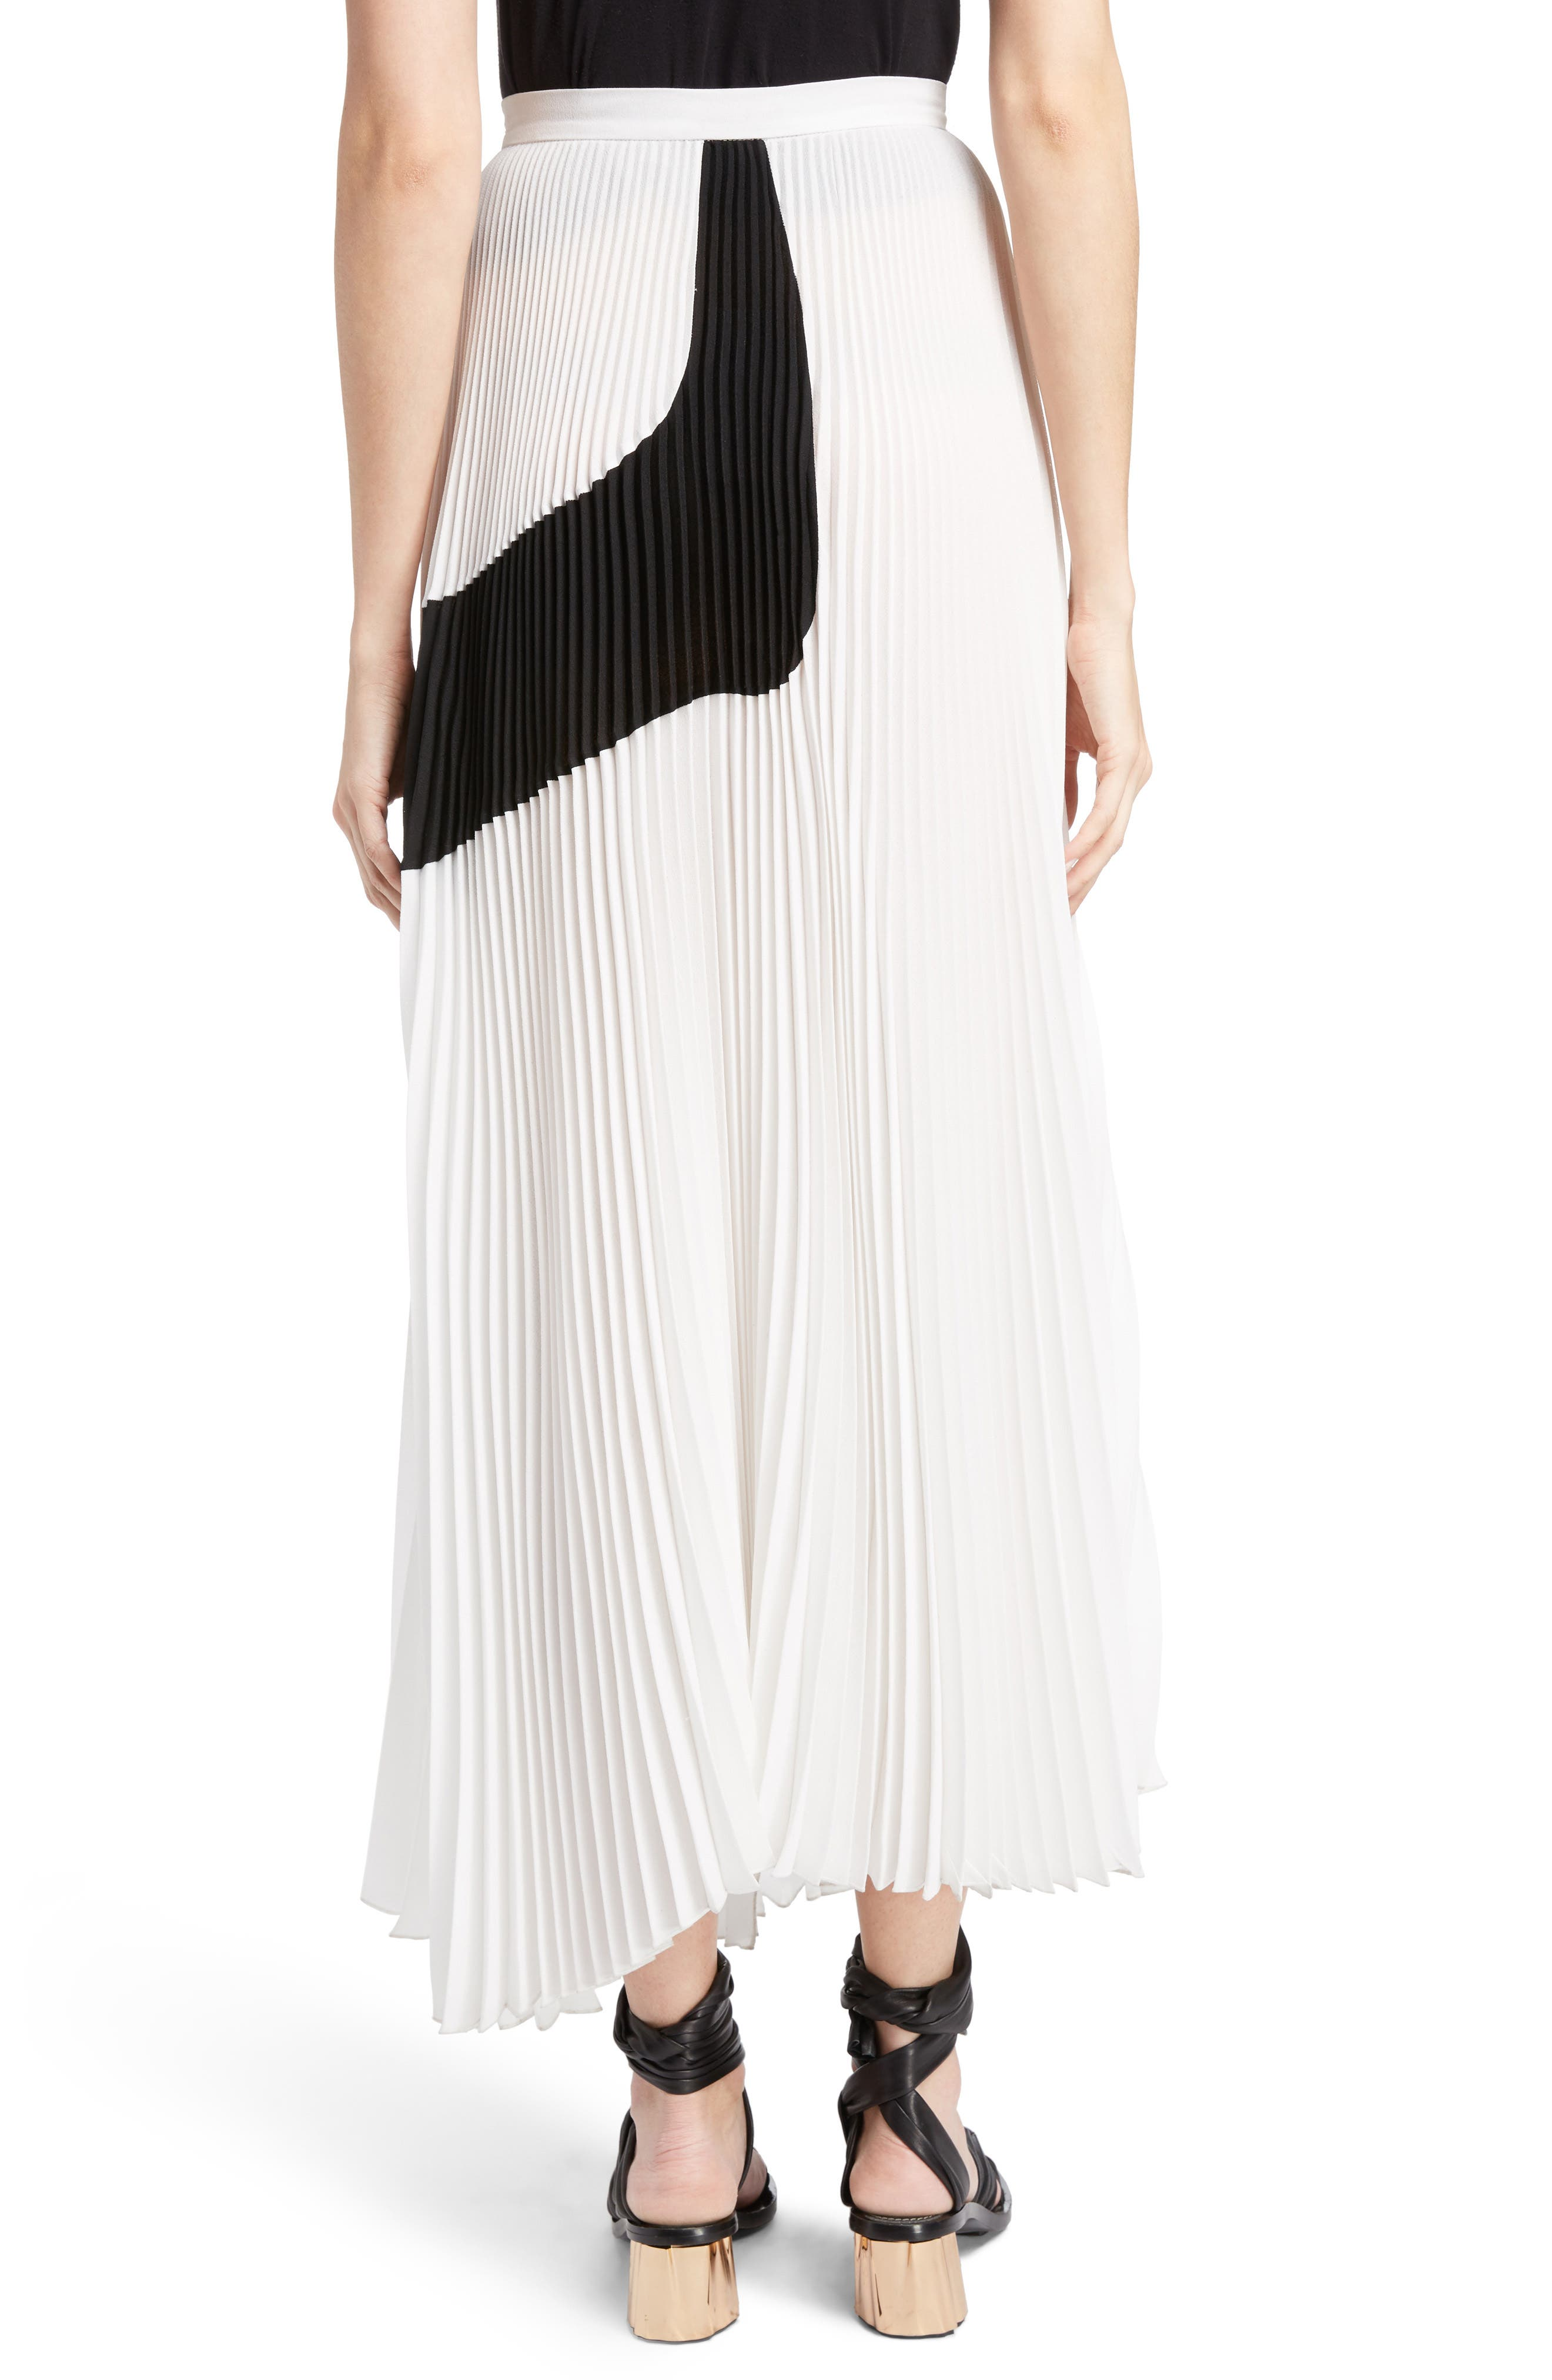 White Skirts: A-Line, Pencil, Maxi, Miniskirts & More | Nordstrom ...